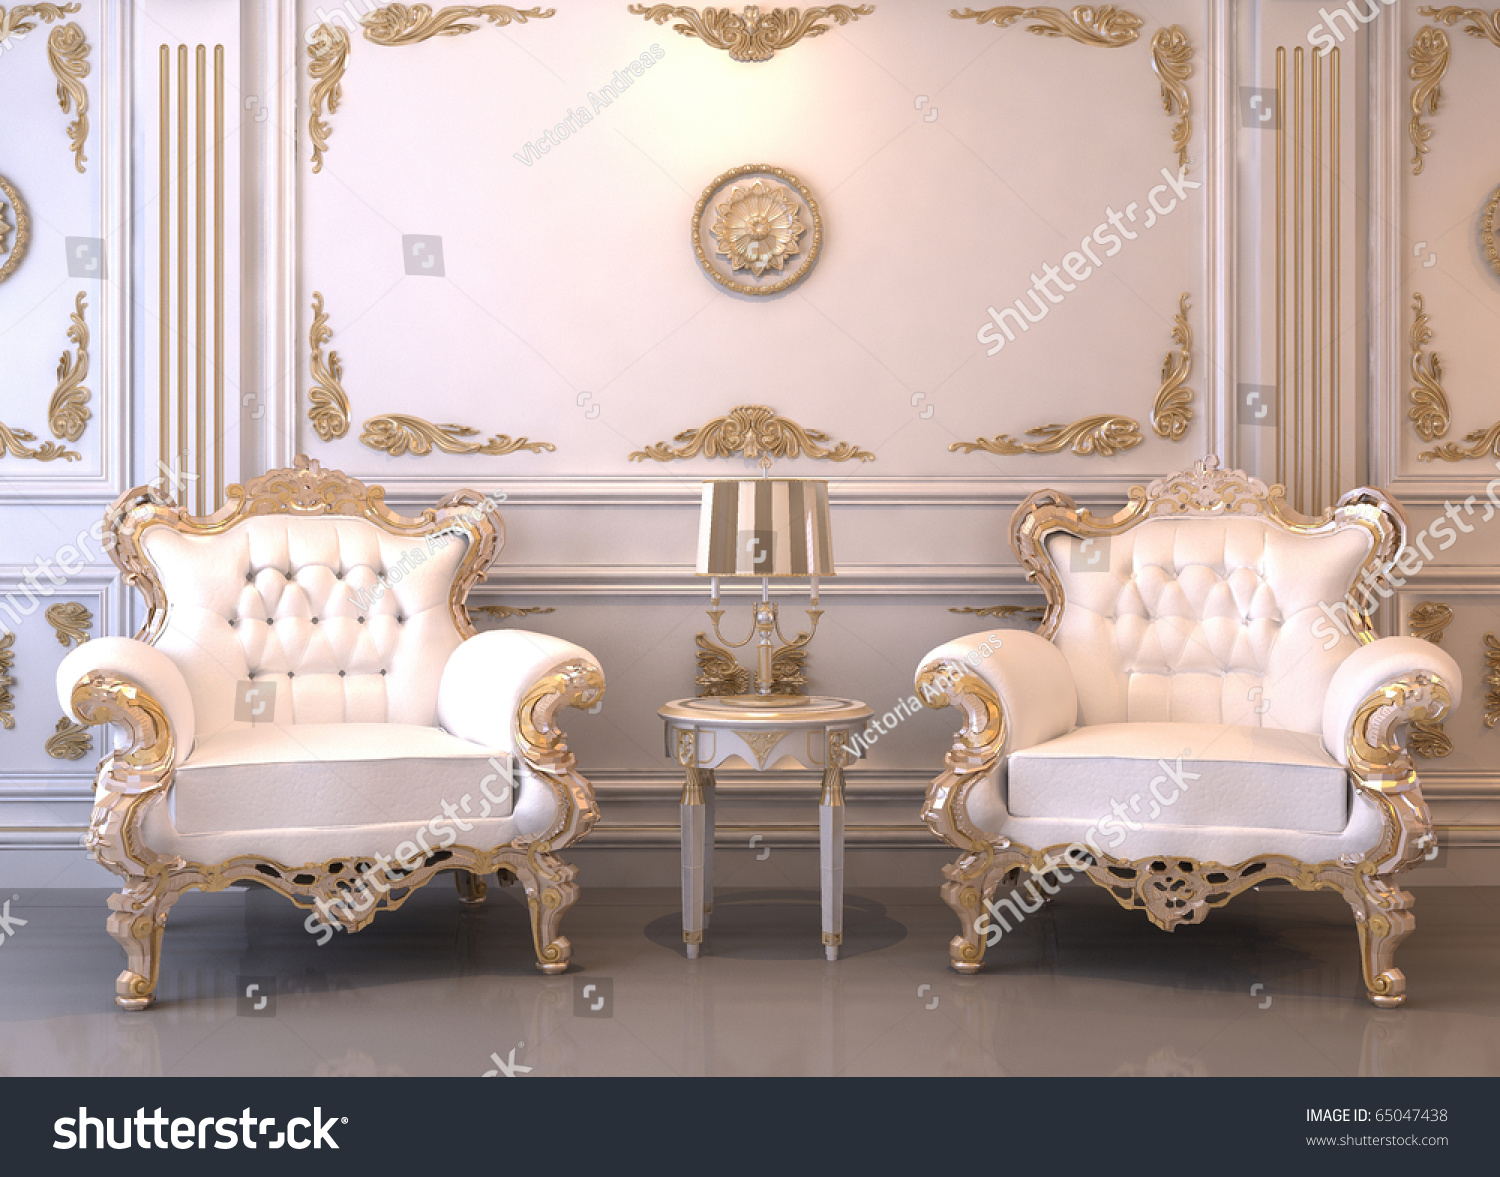 Great Royal Furniture In Luxury Interior